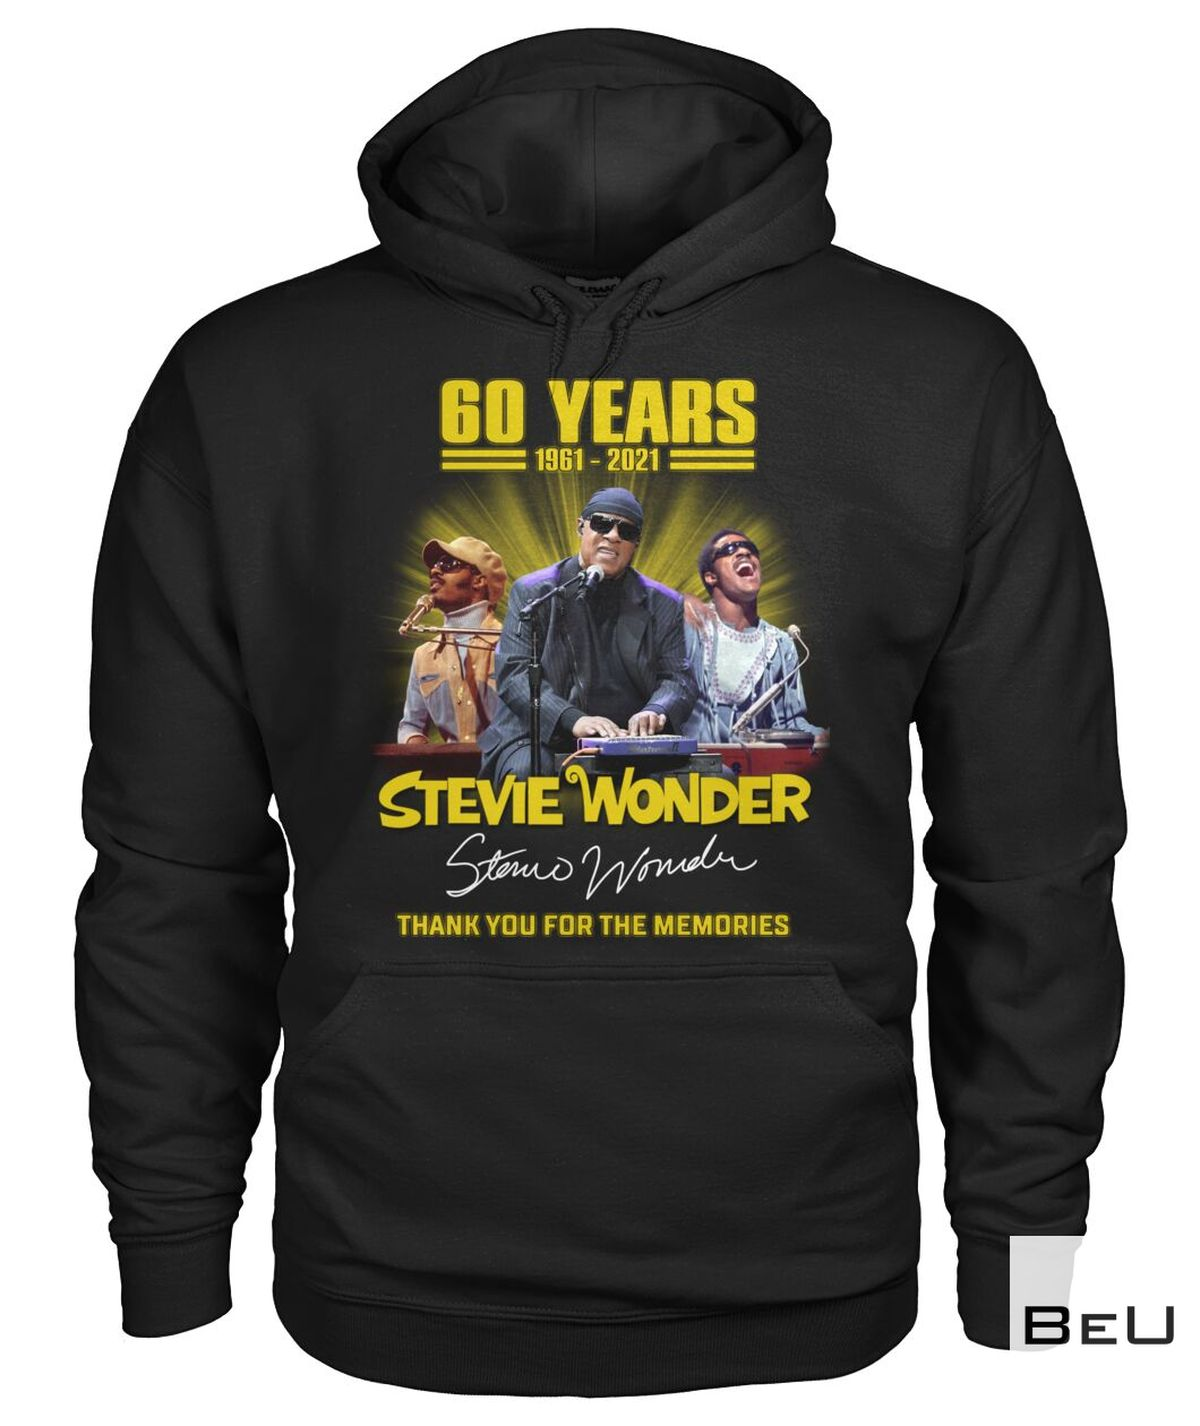 Awesome Stevie Wonder 60 Years Thank You For The Memories Shirt, hoodie, tank top